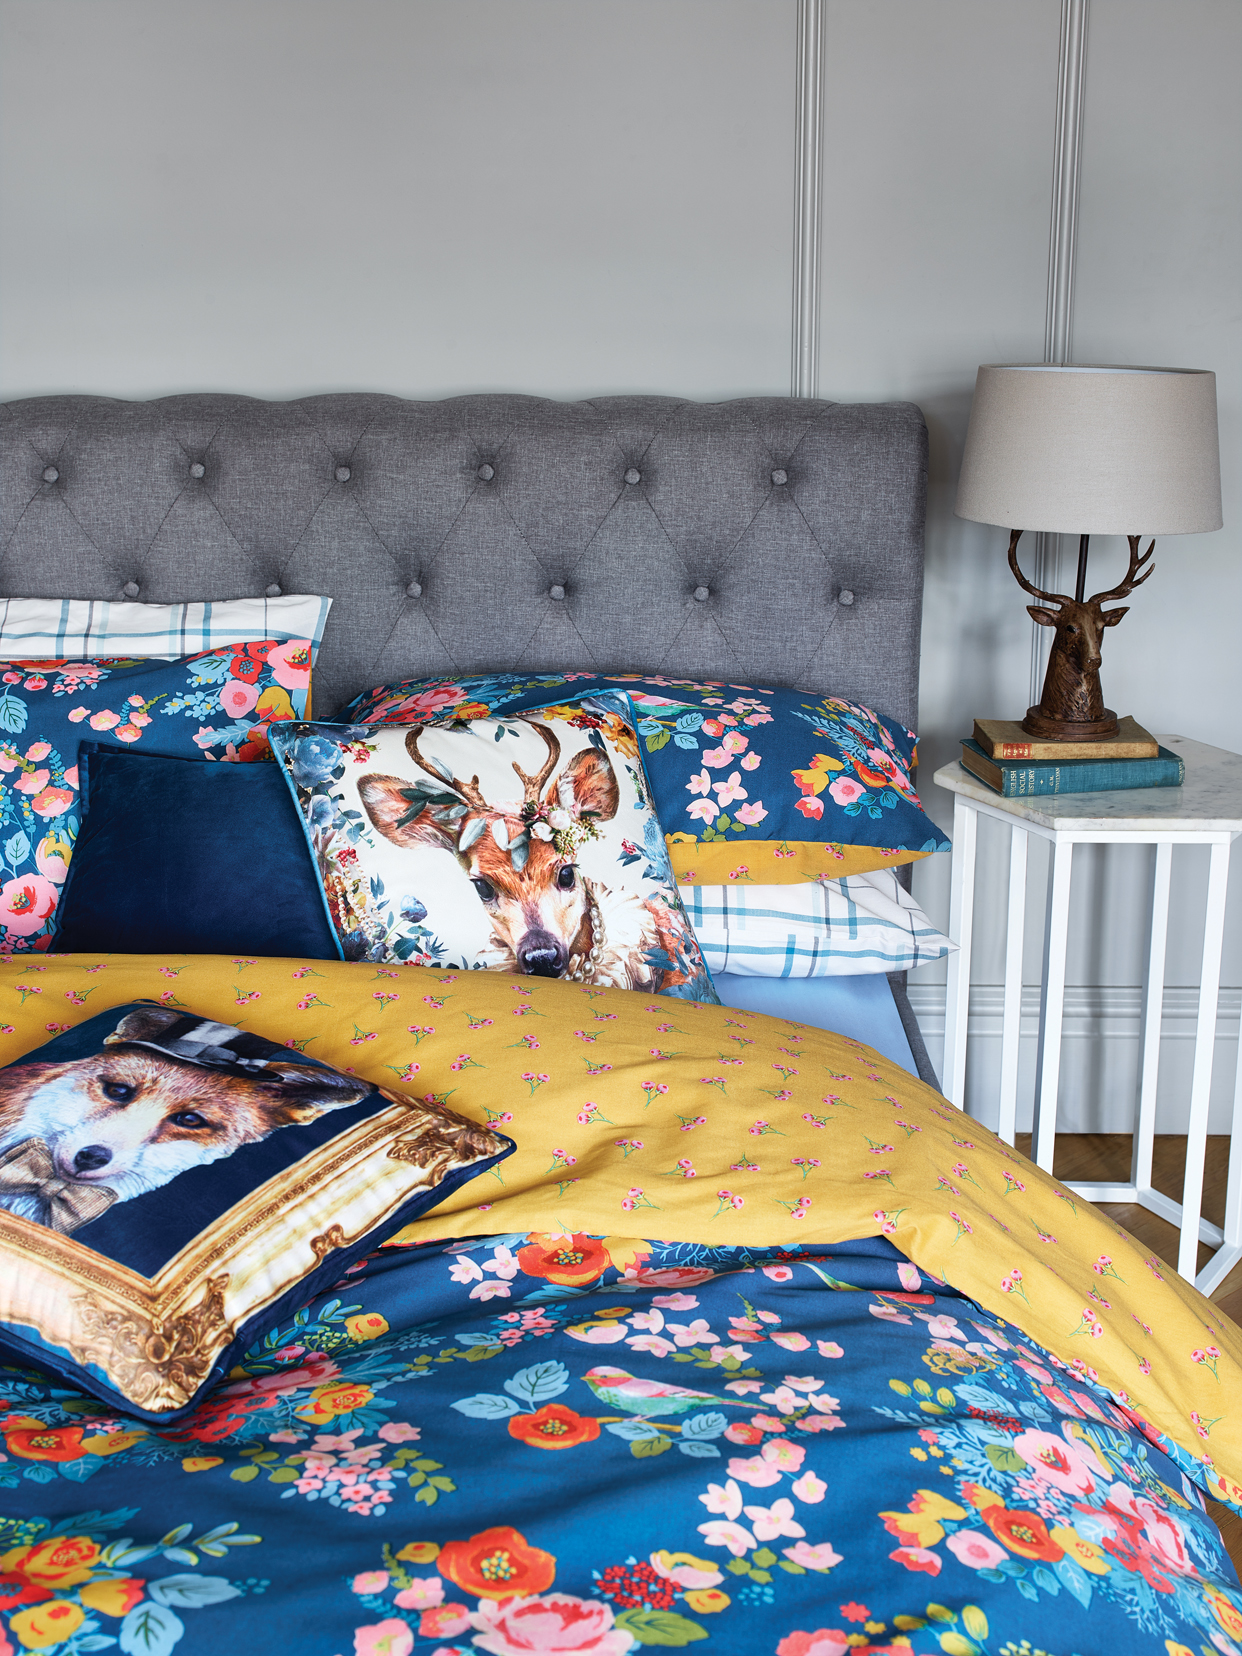 Chesterfield bed - £239, Bird and Floral double duvet set - £12, Deer cushion - £6, Blue velvet cushion - £5, Fox in a frame cushion - £6, Marble side table - £59, Stag head lamp - £27.